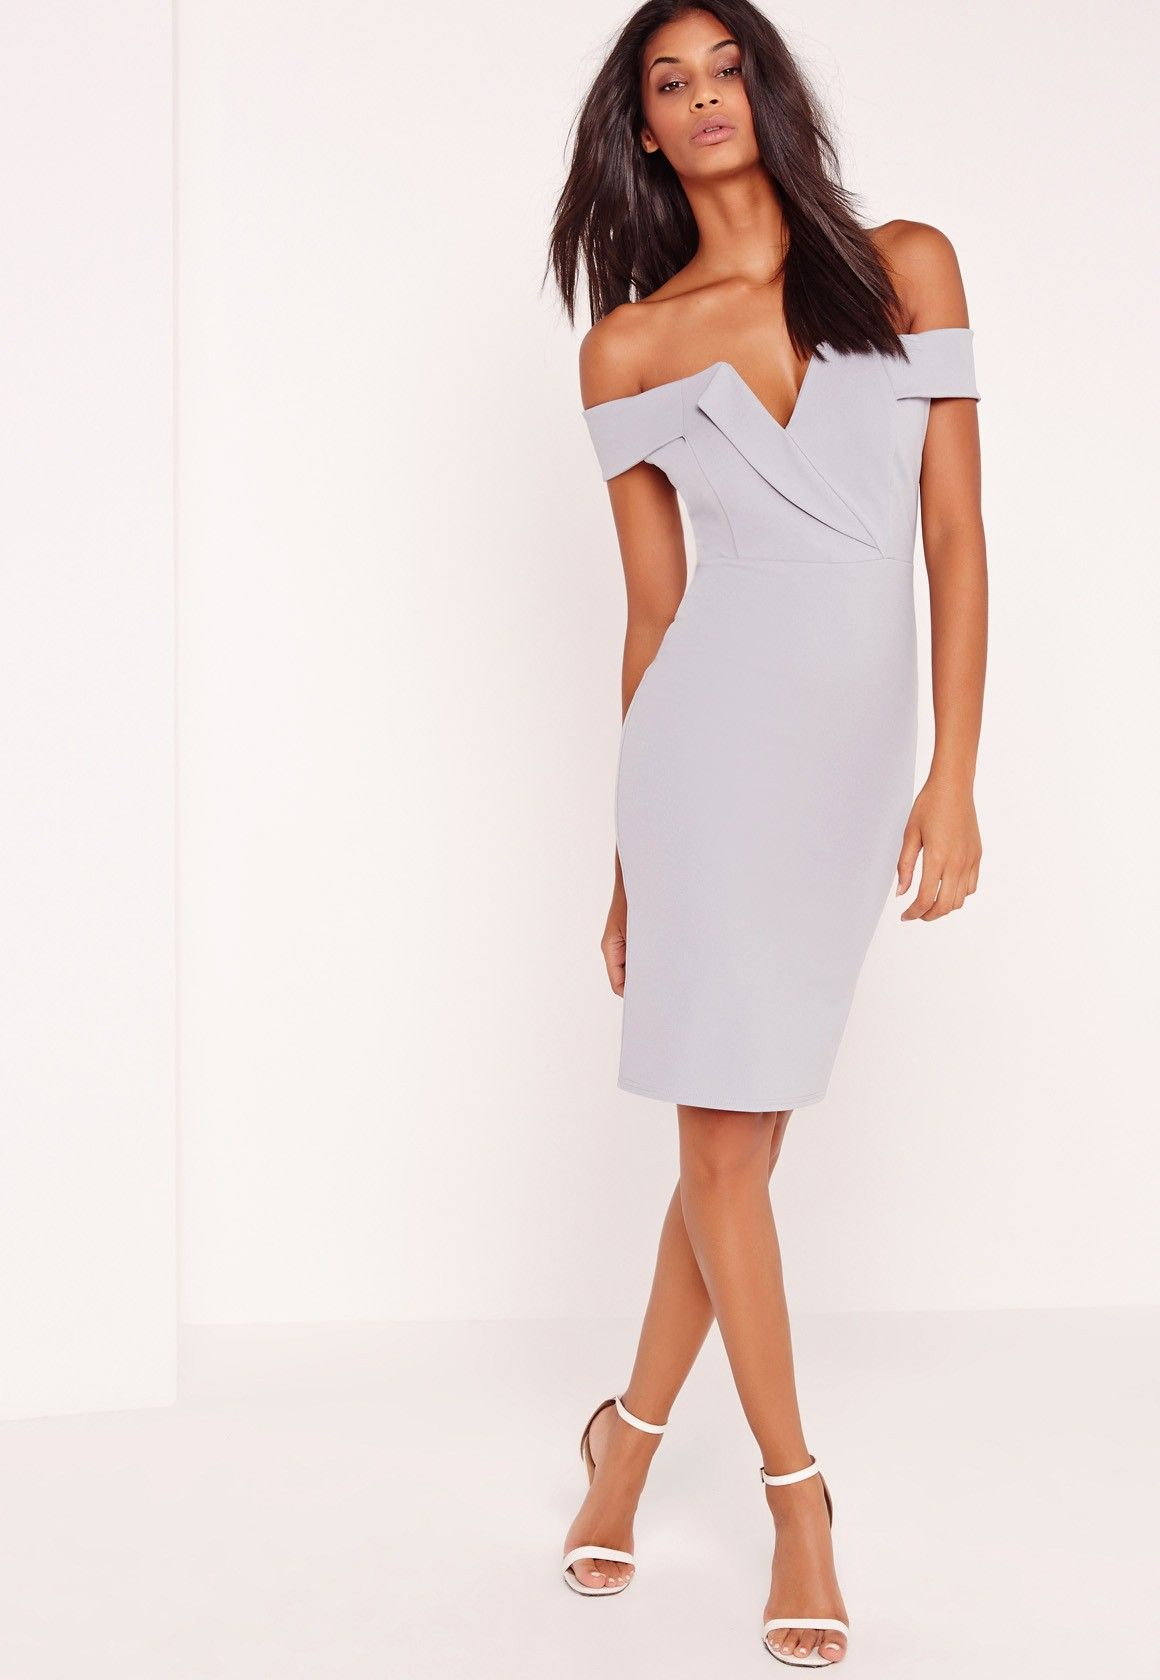 Dresses for guests at a beach wedding  Missguided  Bardot Plunge Midi Dress Grey  Wardrobe  Pinterest